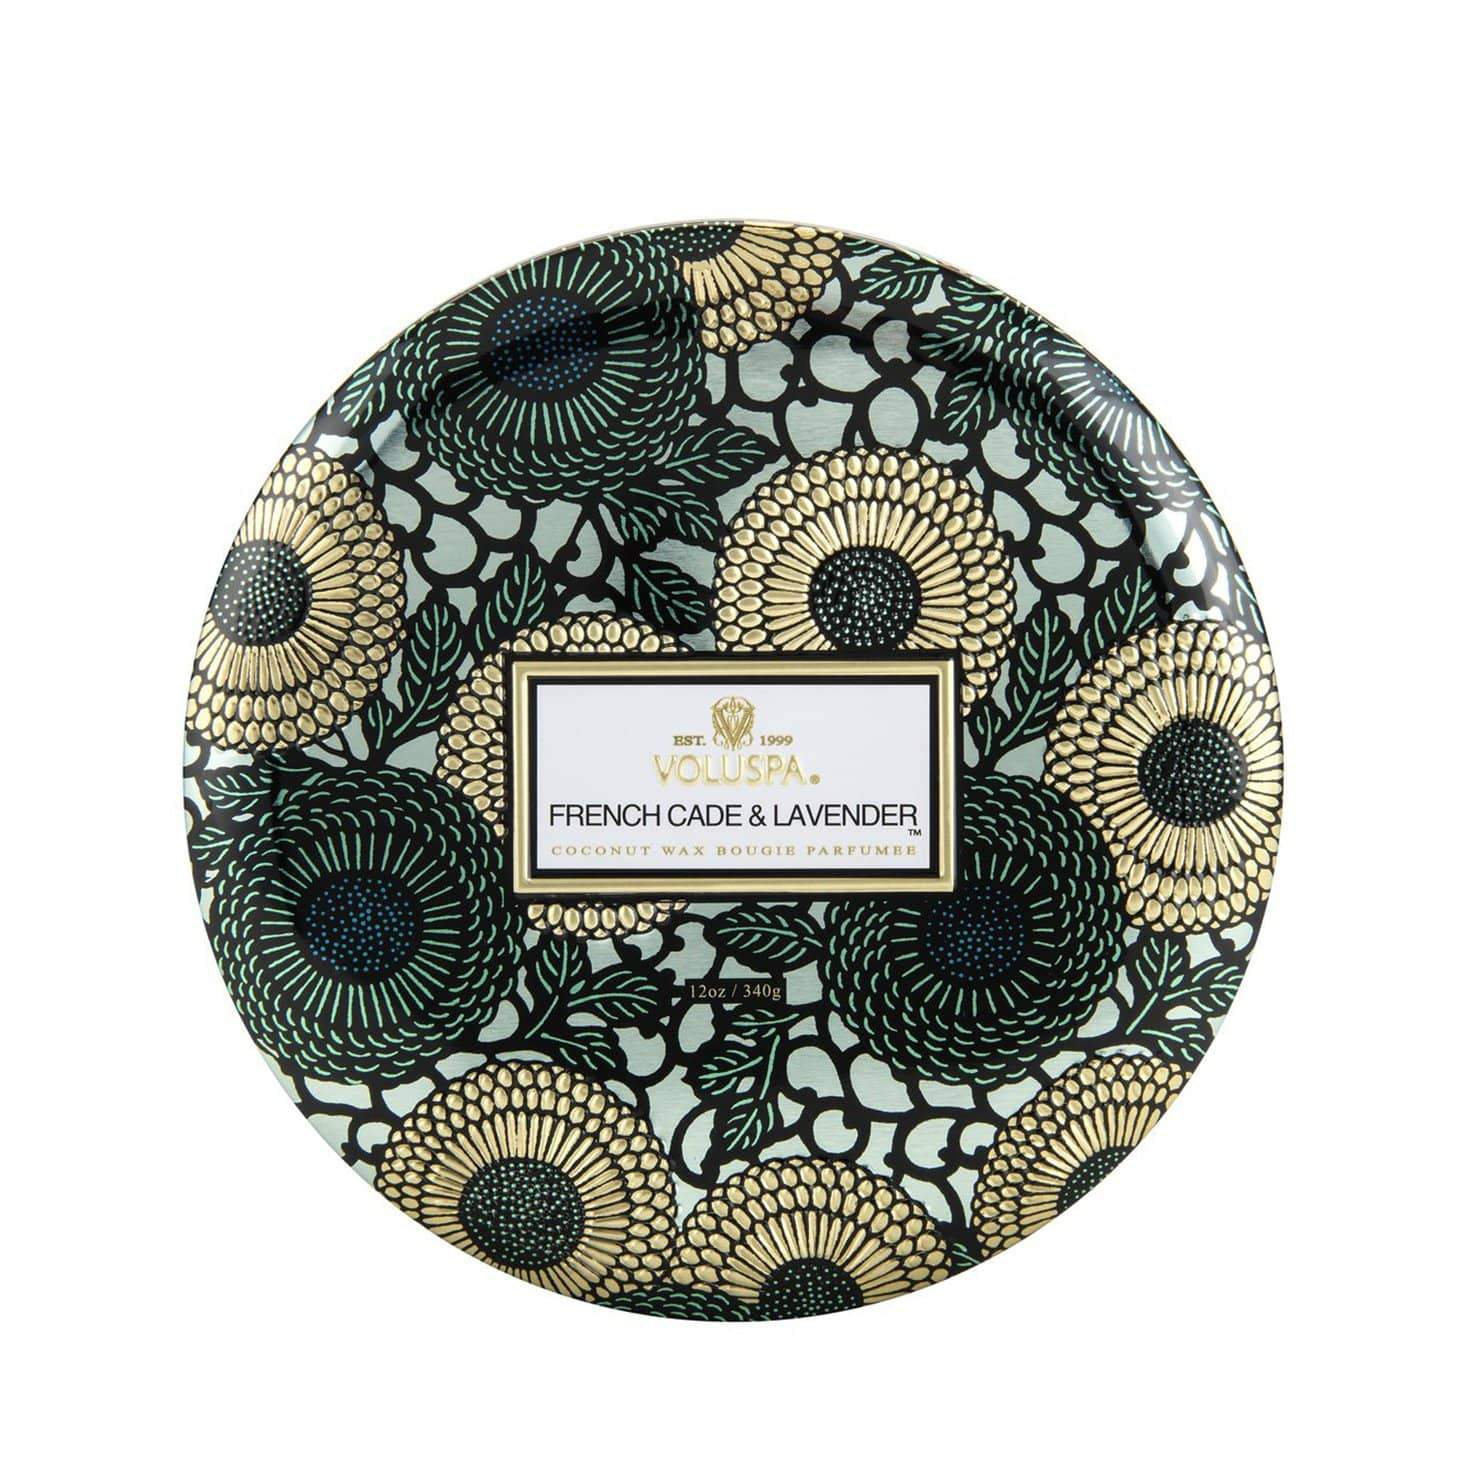 VOLUSPA French Cade & Lavender 3 Wick Candle